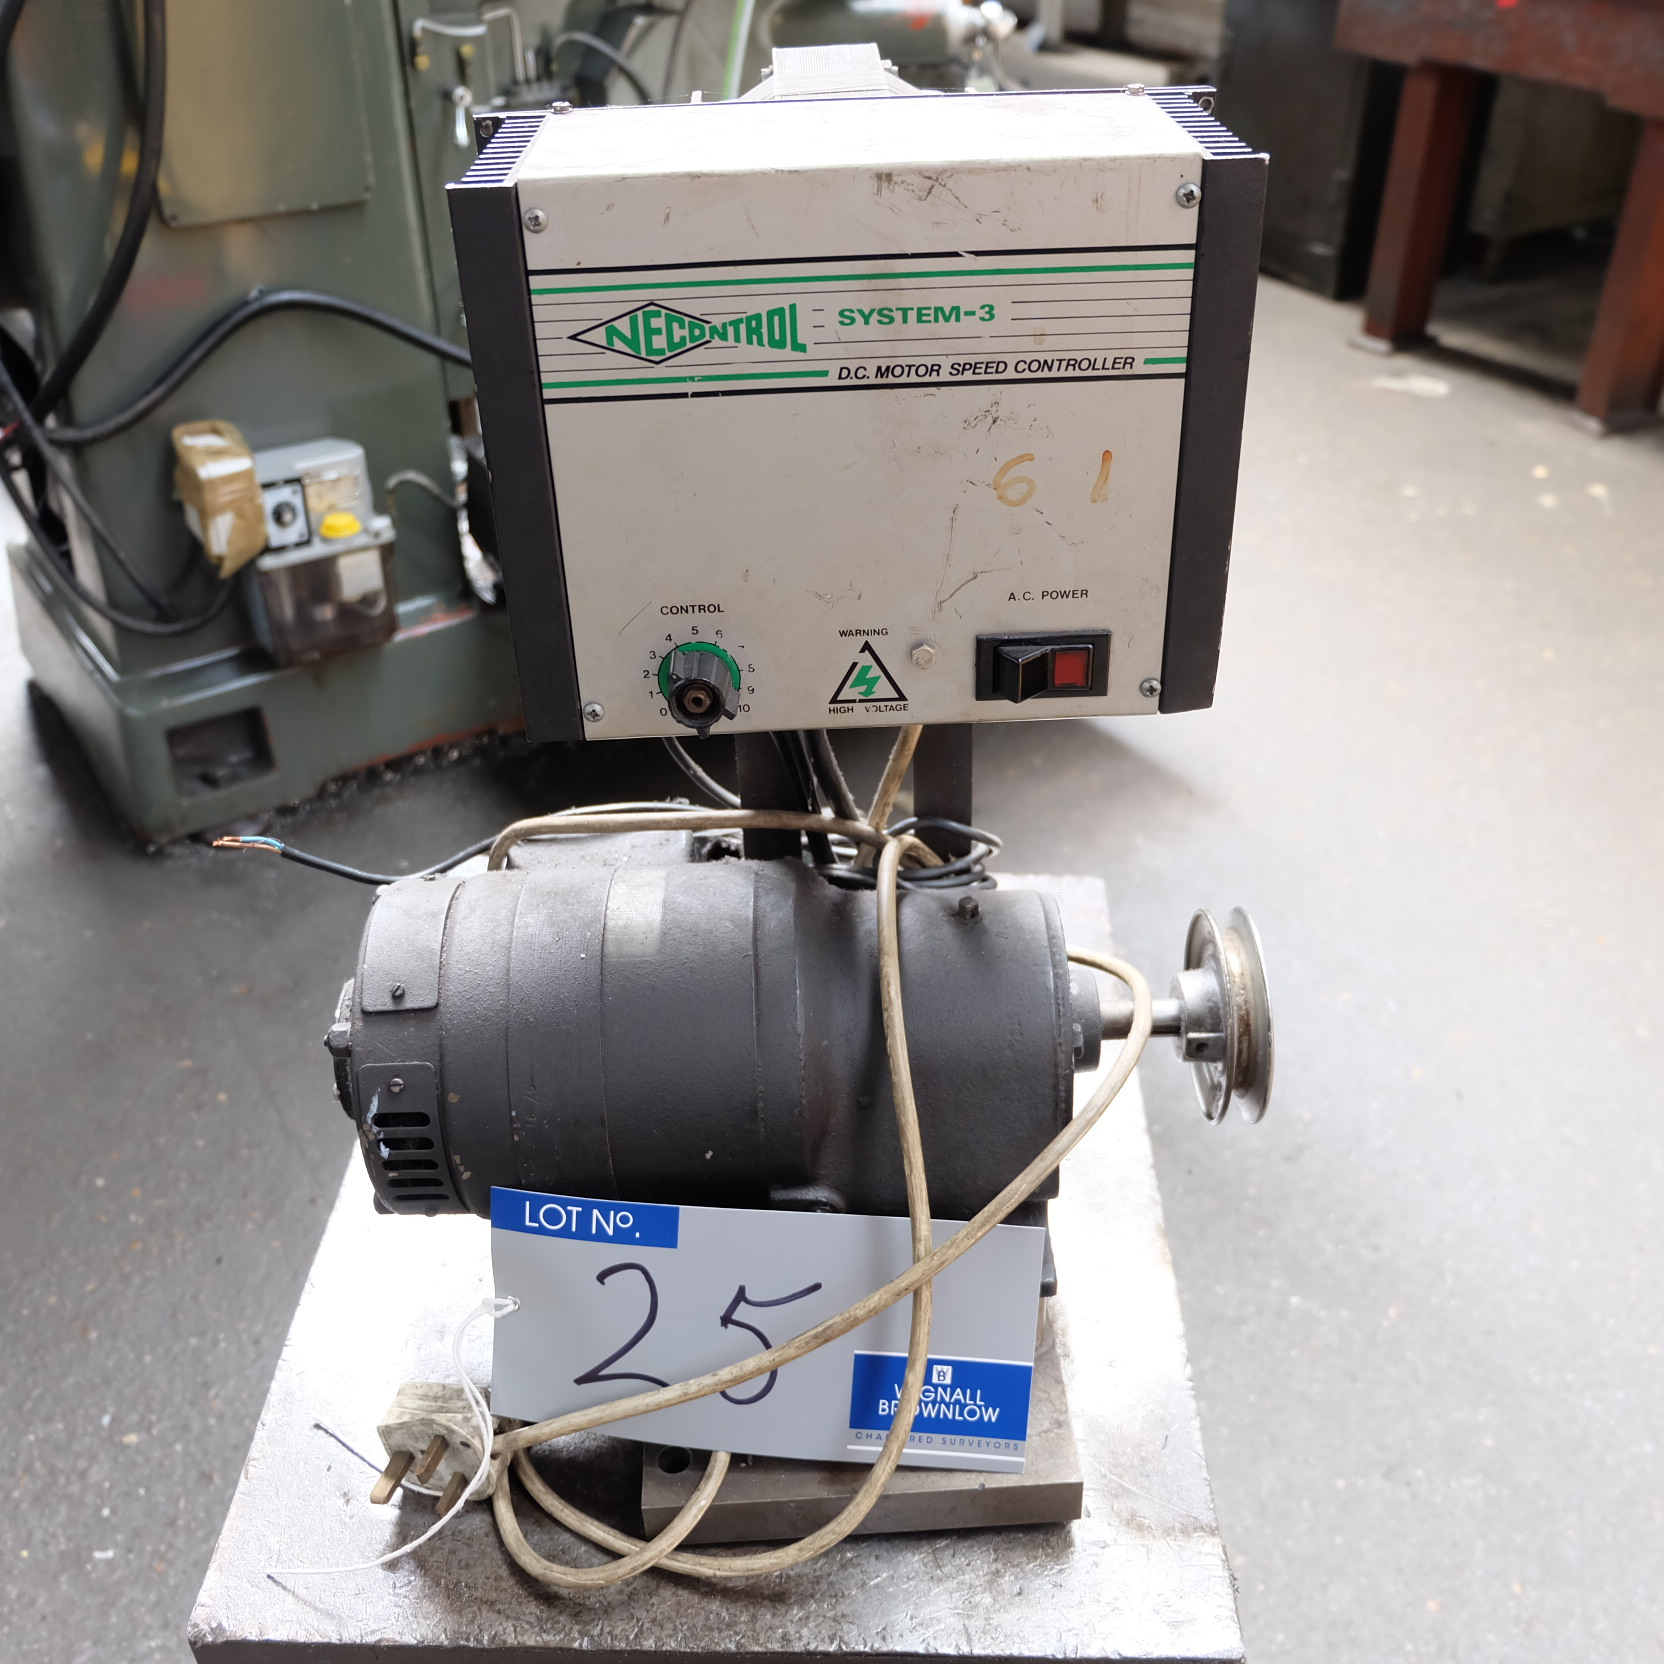 Lot 25 - A Motorised Belt Drive with Necontrol System 3 DC Motor Speed Controller (240v) and Stand.